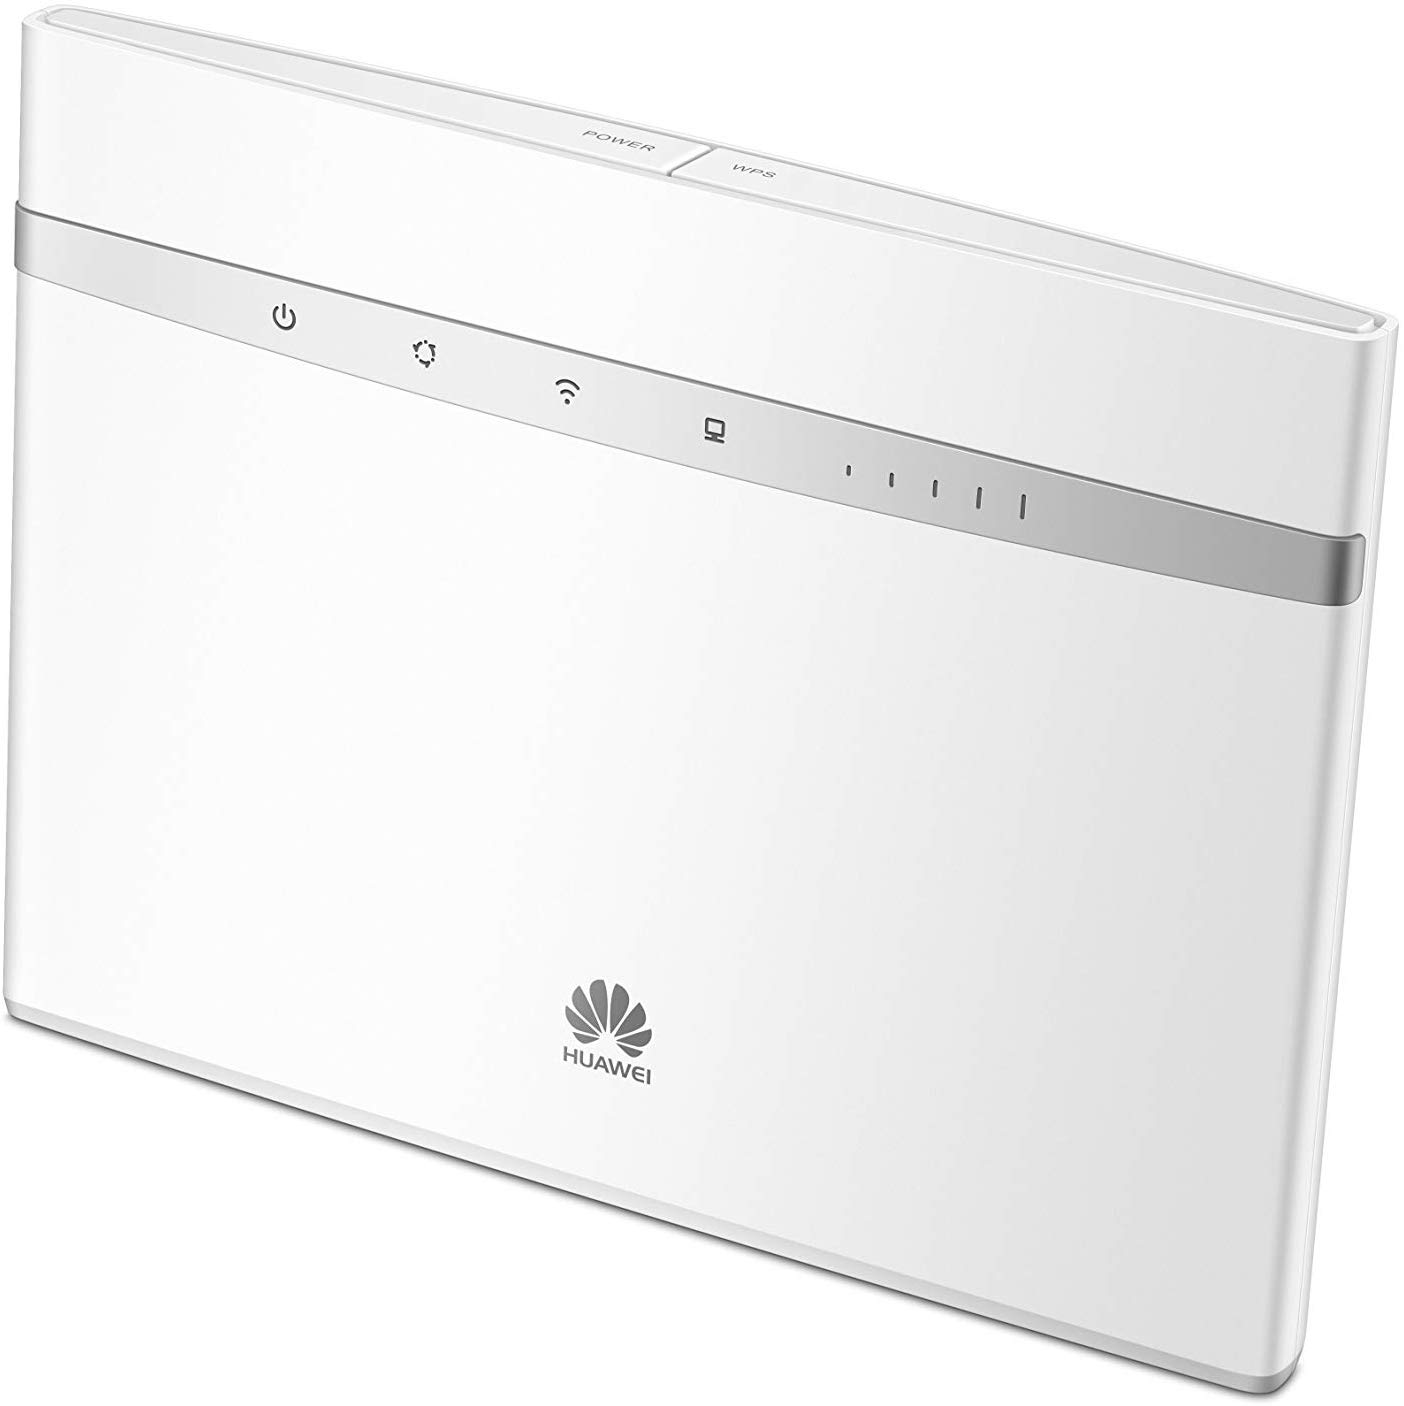 Huawei B525-4G 300Mbps mobile WiFi Router £99.99 on Amazon